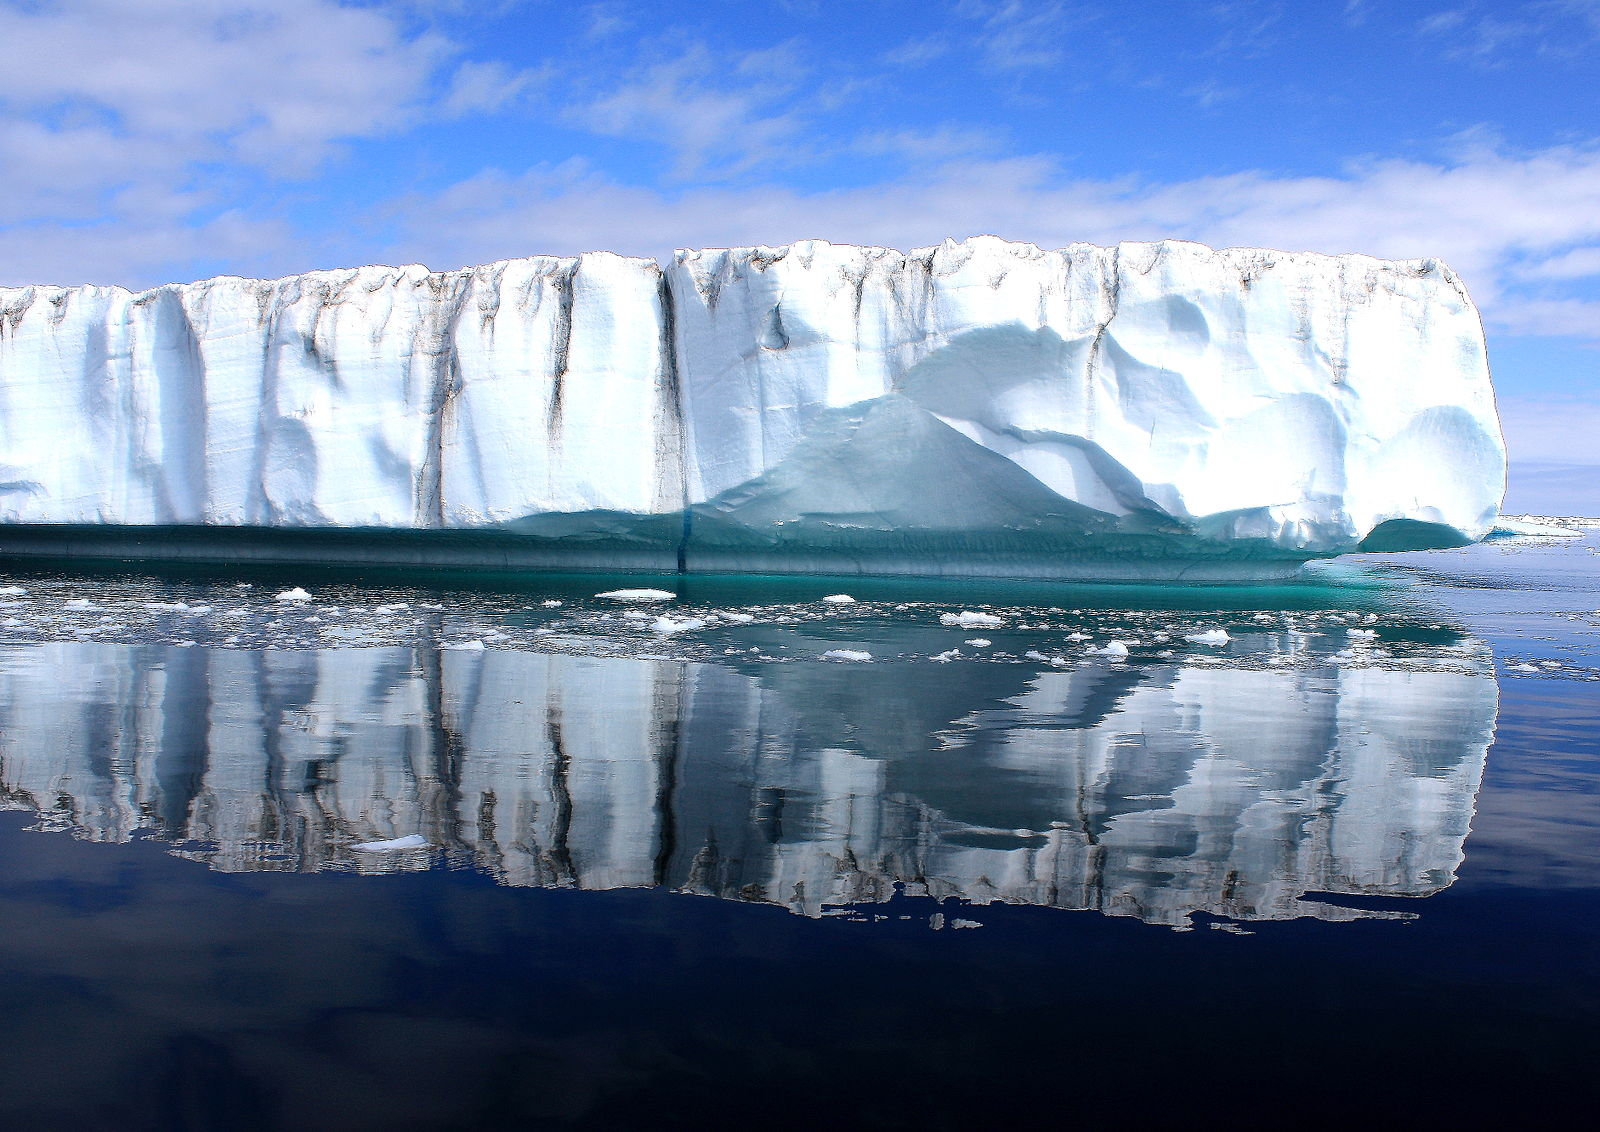 NASA Launches 'Operation OMG' After 10 Ft. Sea Level Rise Predicted in Next 50 Yrs.